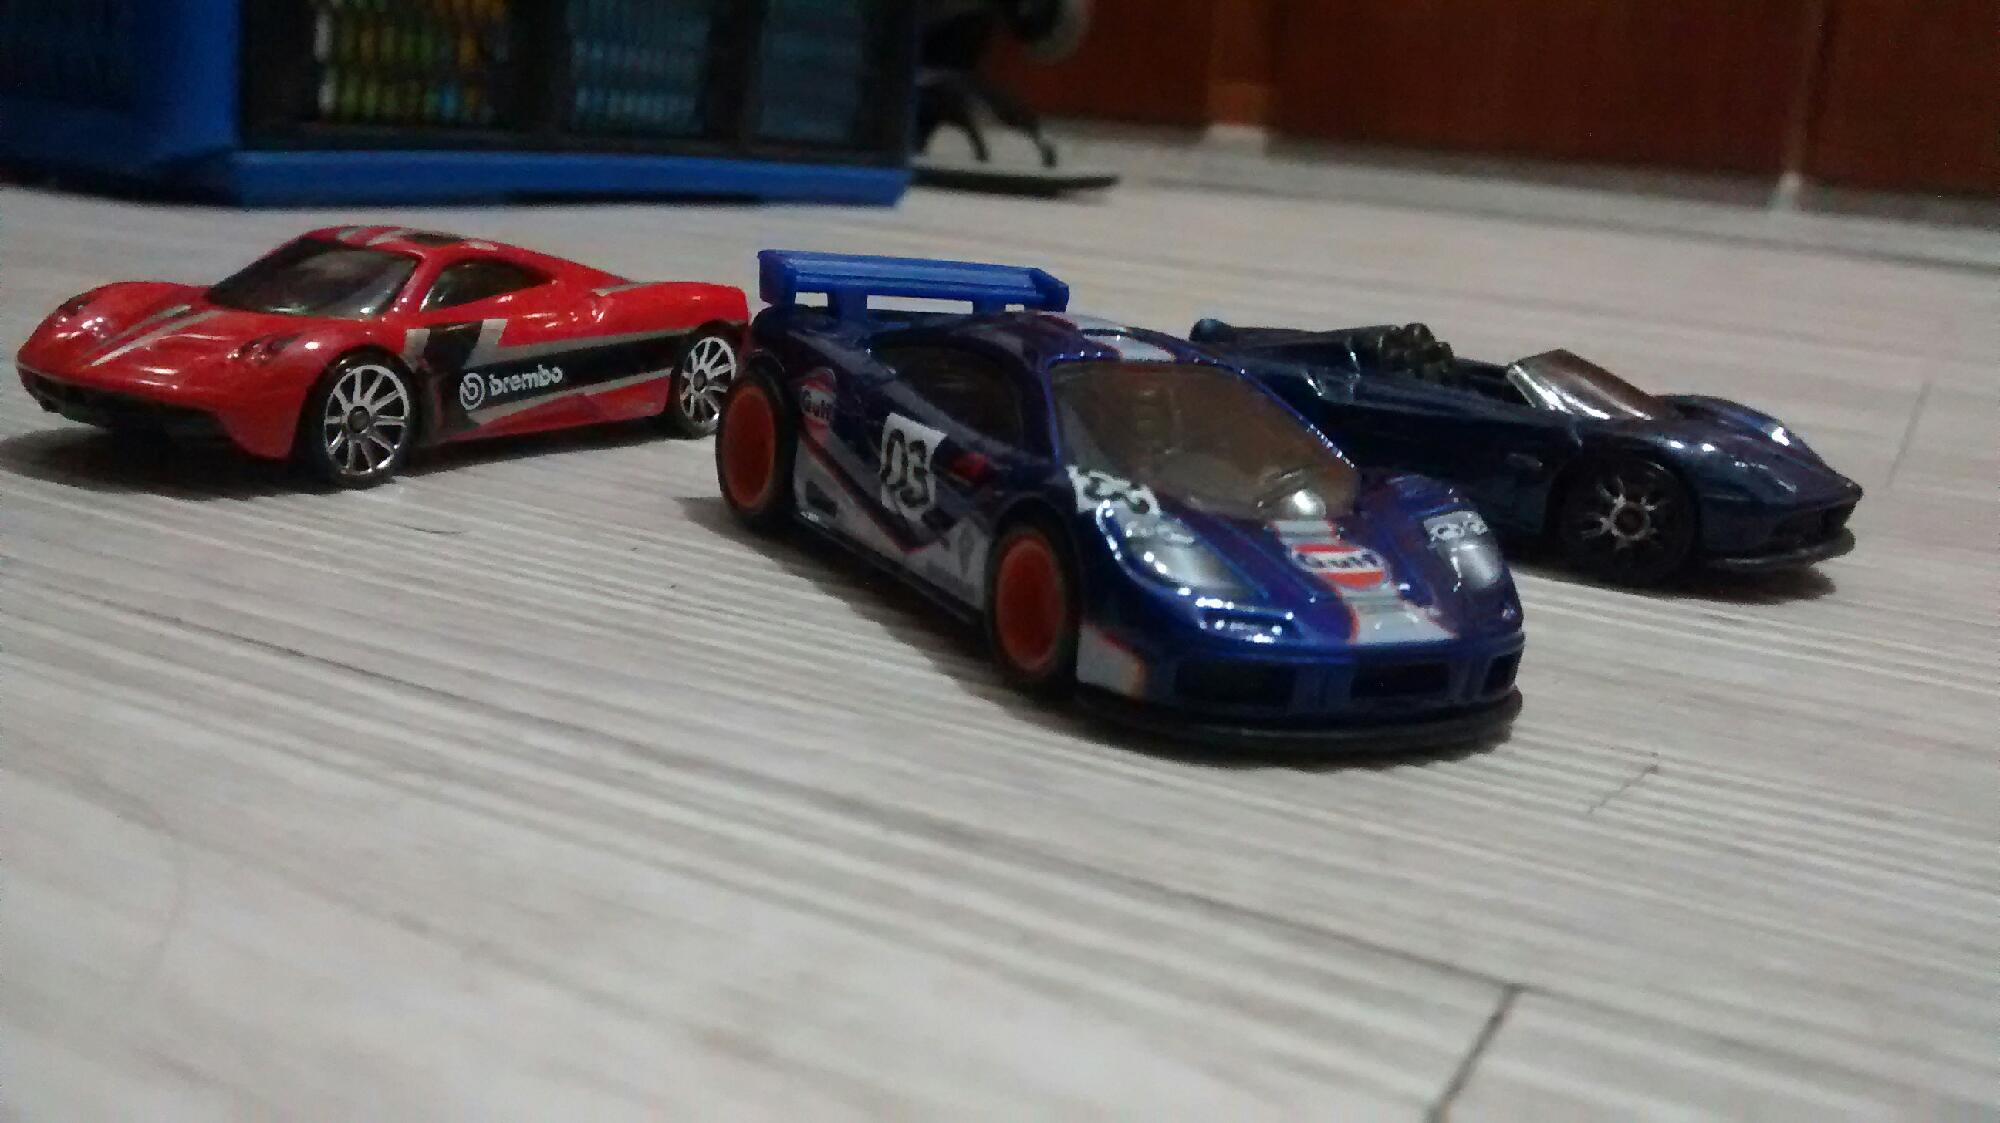 My hot Wheels cars